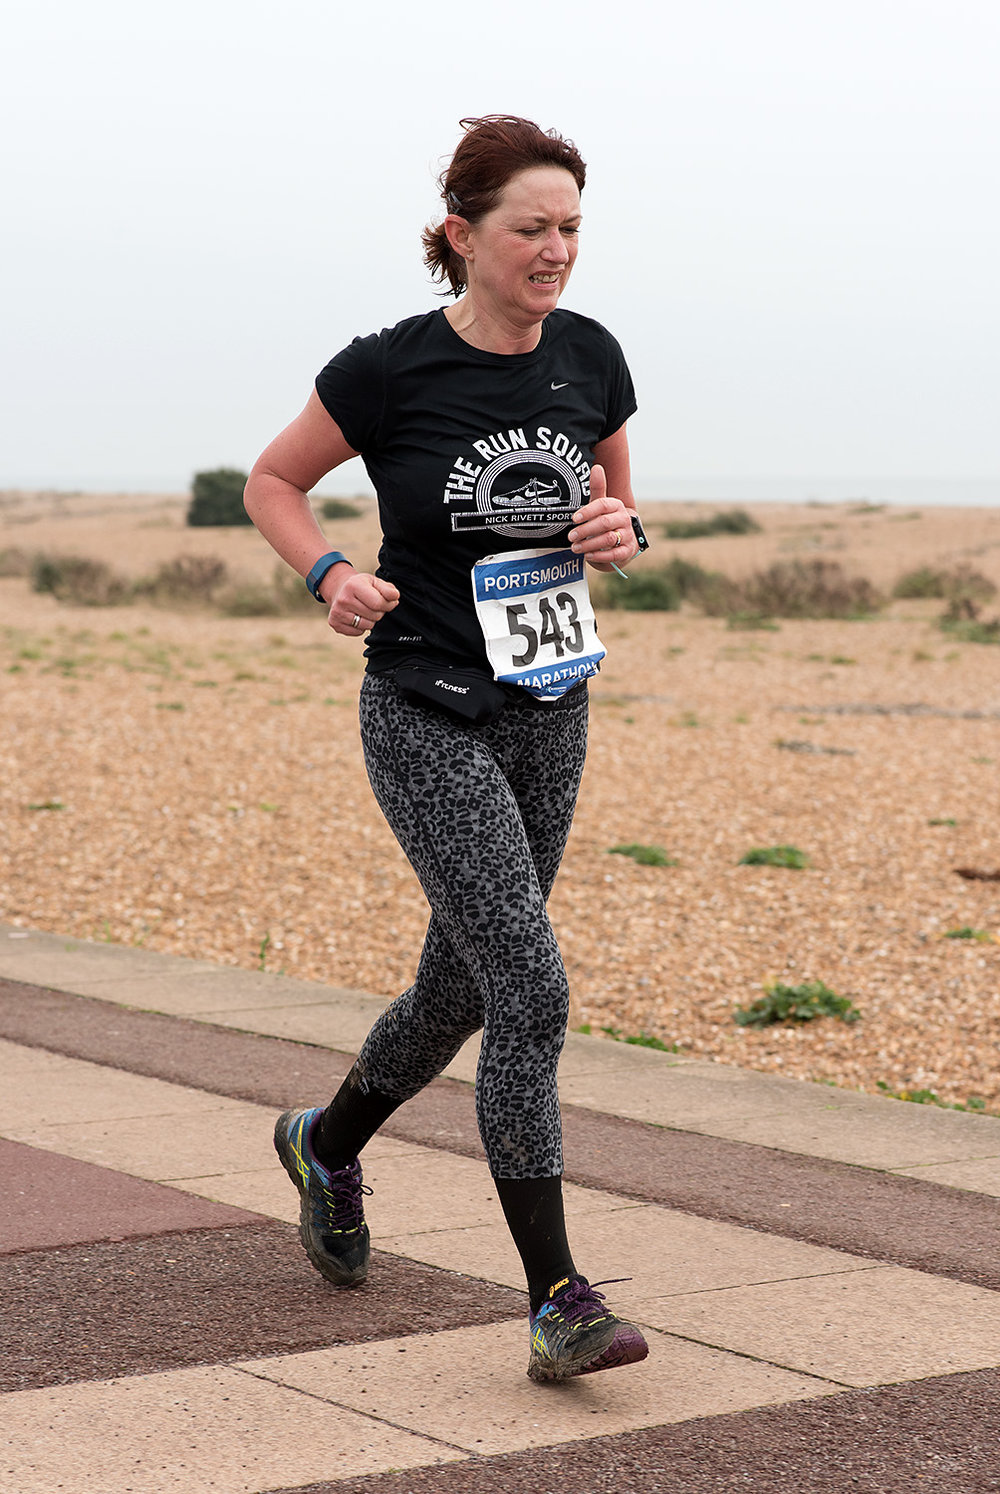 Portsmouth Coastal Waterside Marathon 2016 - Mile 24.5